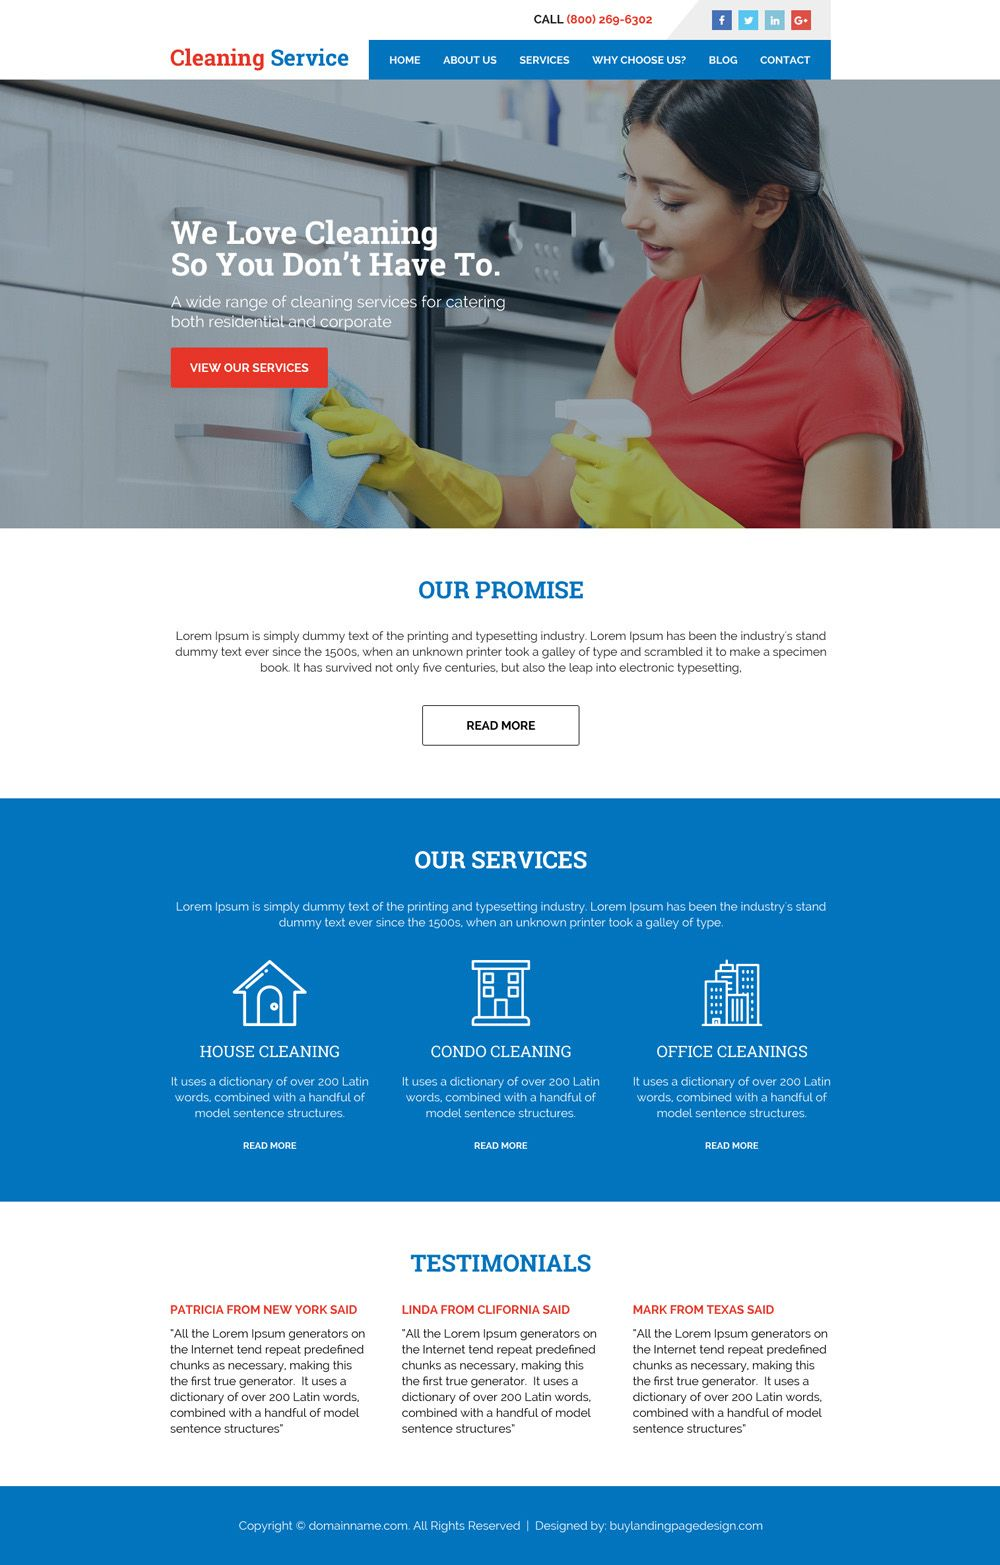 cleaning services minimal website design   html website template ...